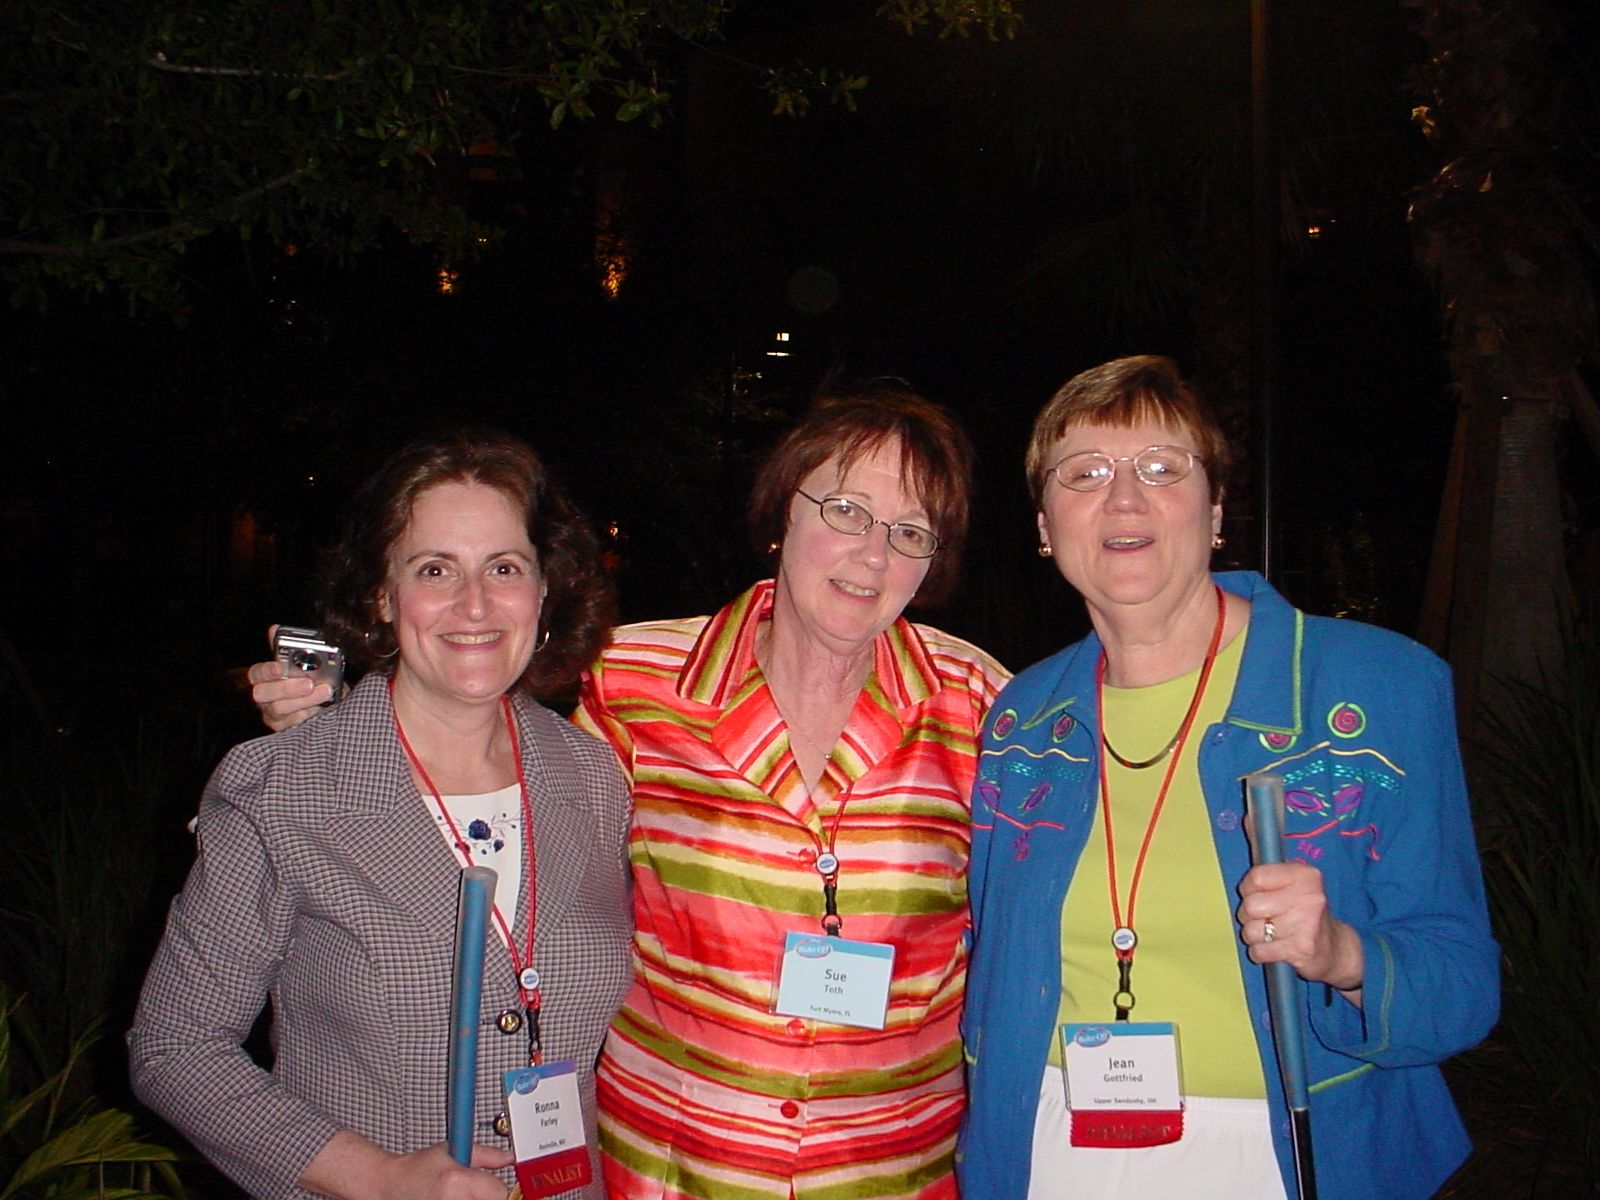 Ronna Farley, S Toth and Jean Gottfried.  2006 Pillsbury bake-off.